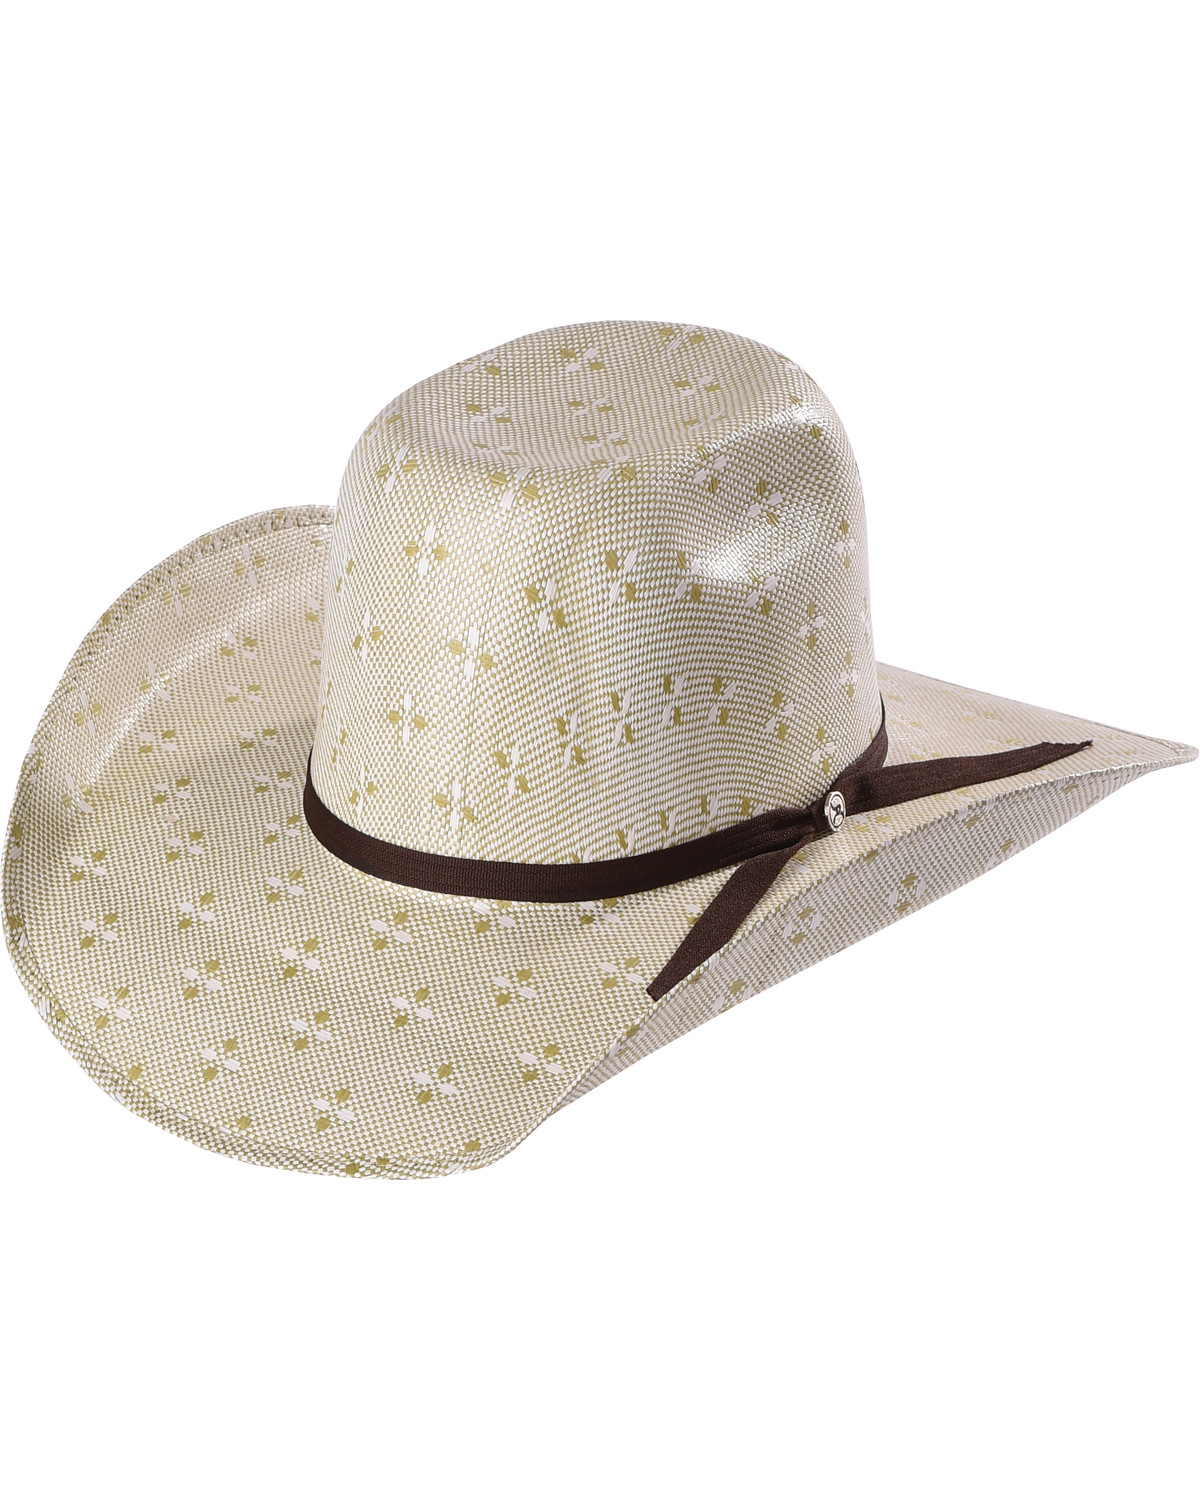 4803eb5f08f2d Hooey by Resistol Men s Natural Pecos Straw Cowboy Hat